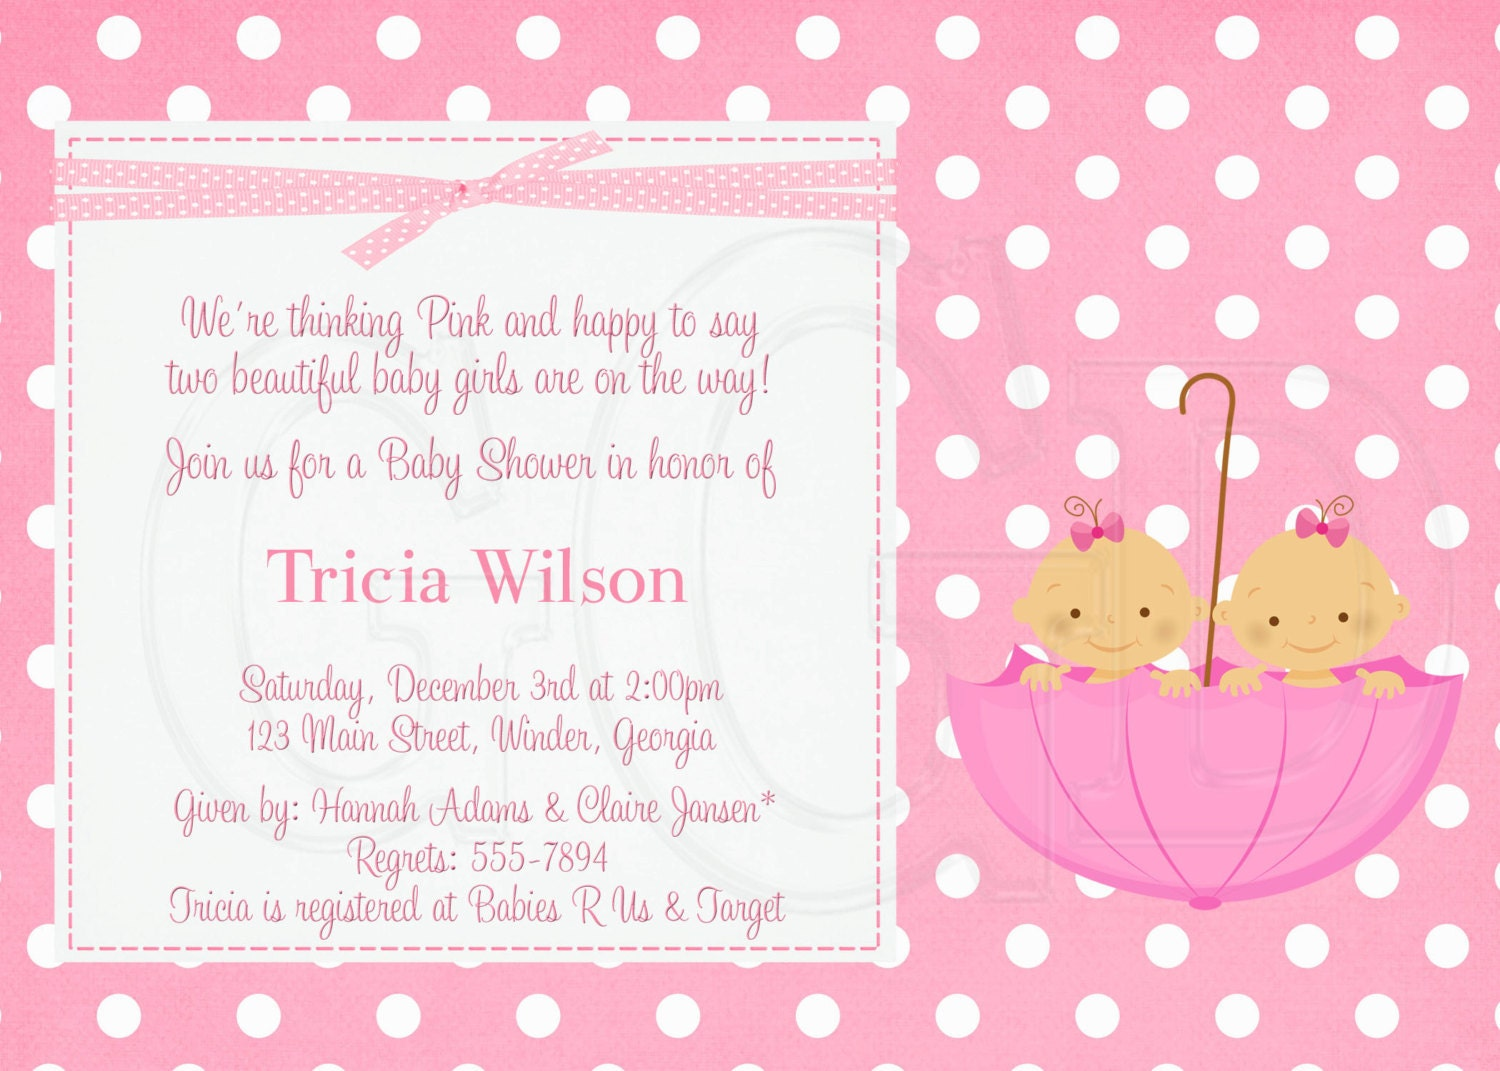 Baby Shower Invite Wording For Girl is good invitations layout